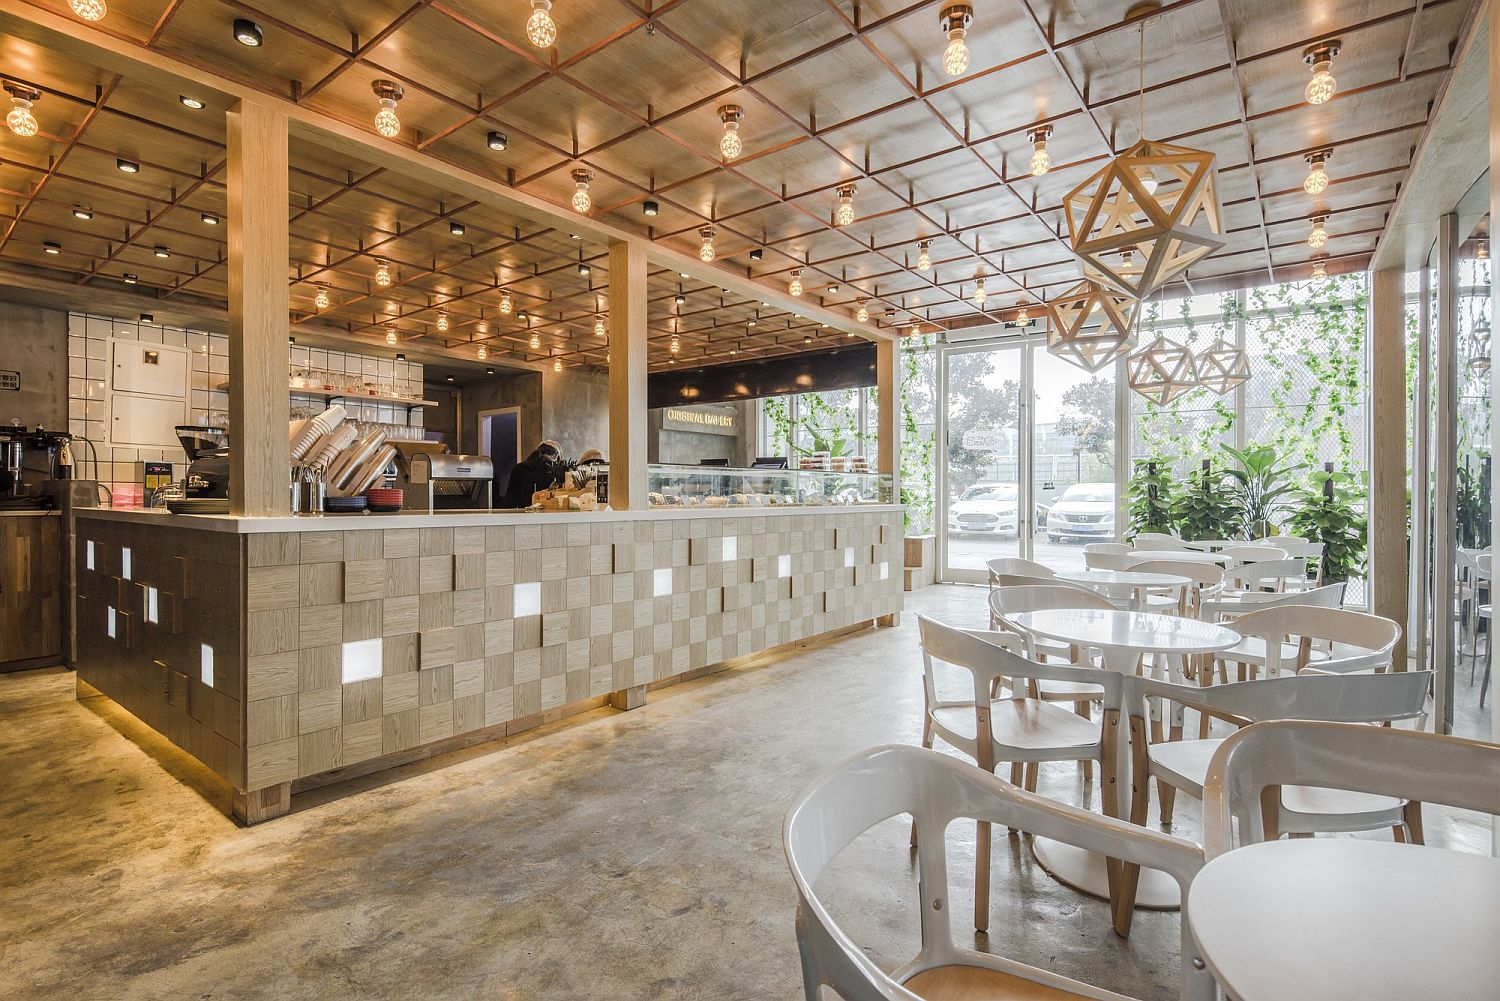 Original-Bakery-in-Chian-designed-with-warmth-and-flair